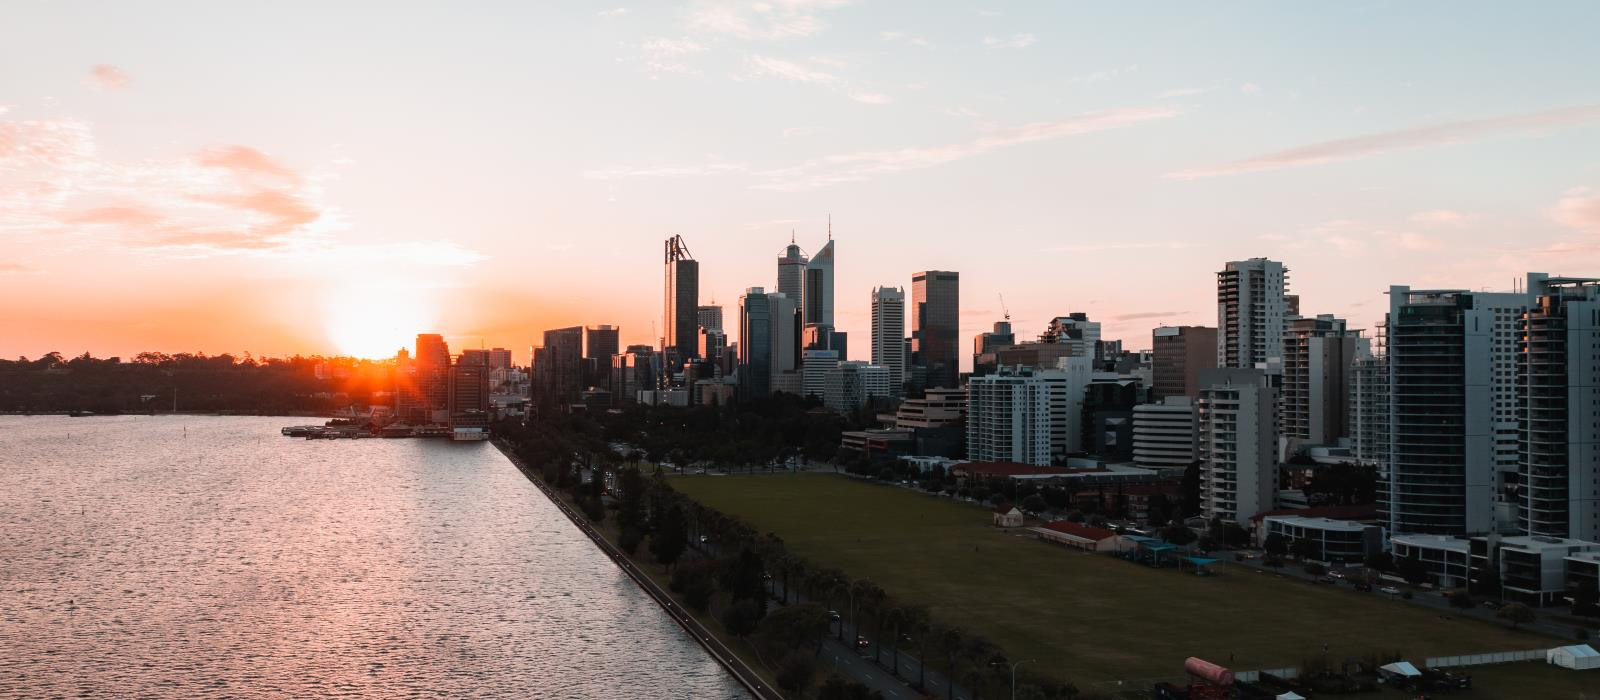 City Skyline with Sunset taken by drone